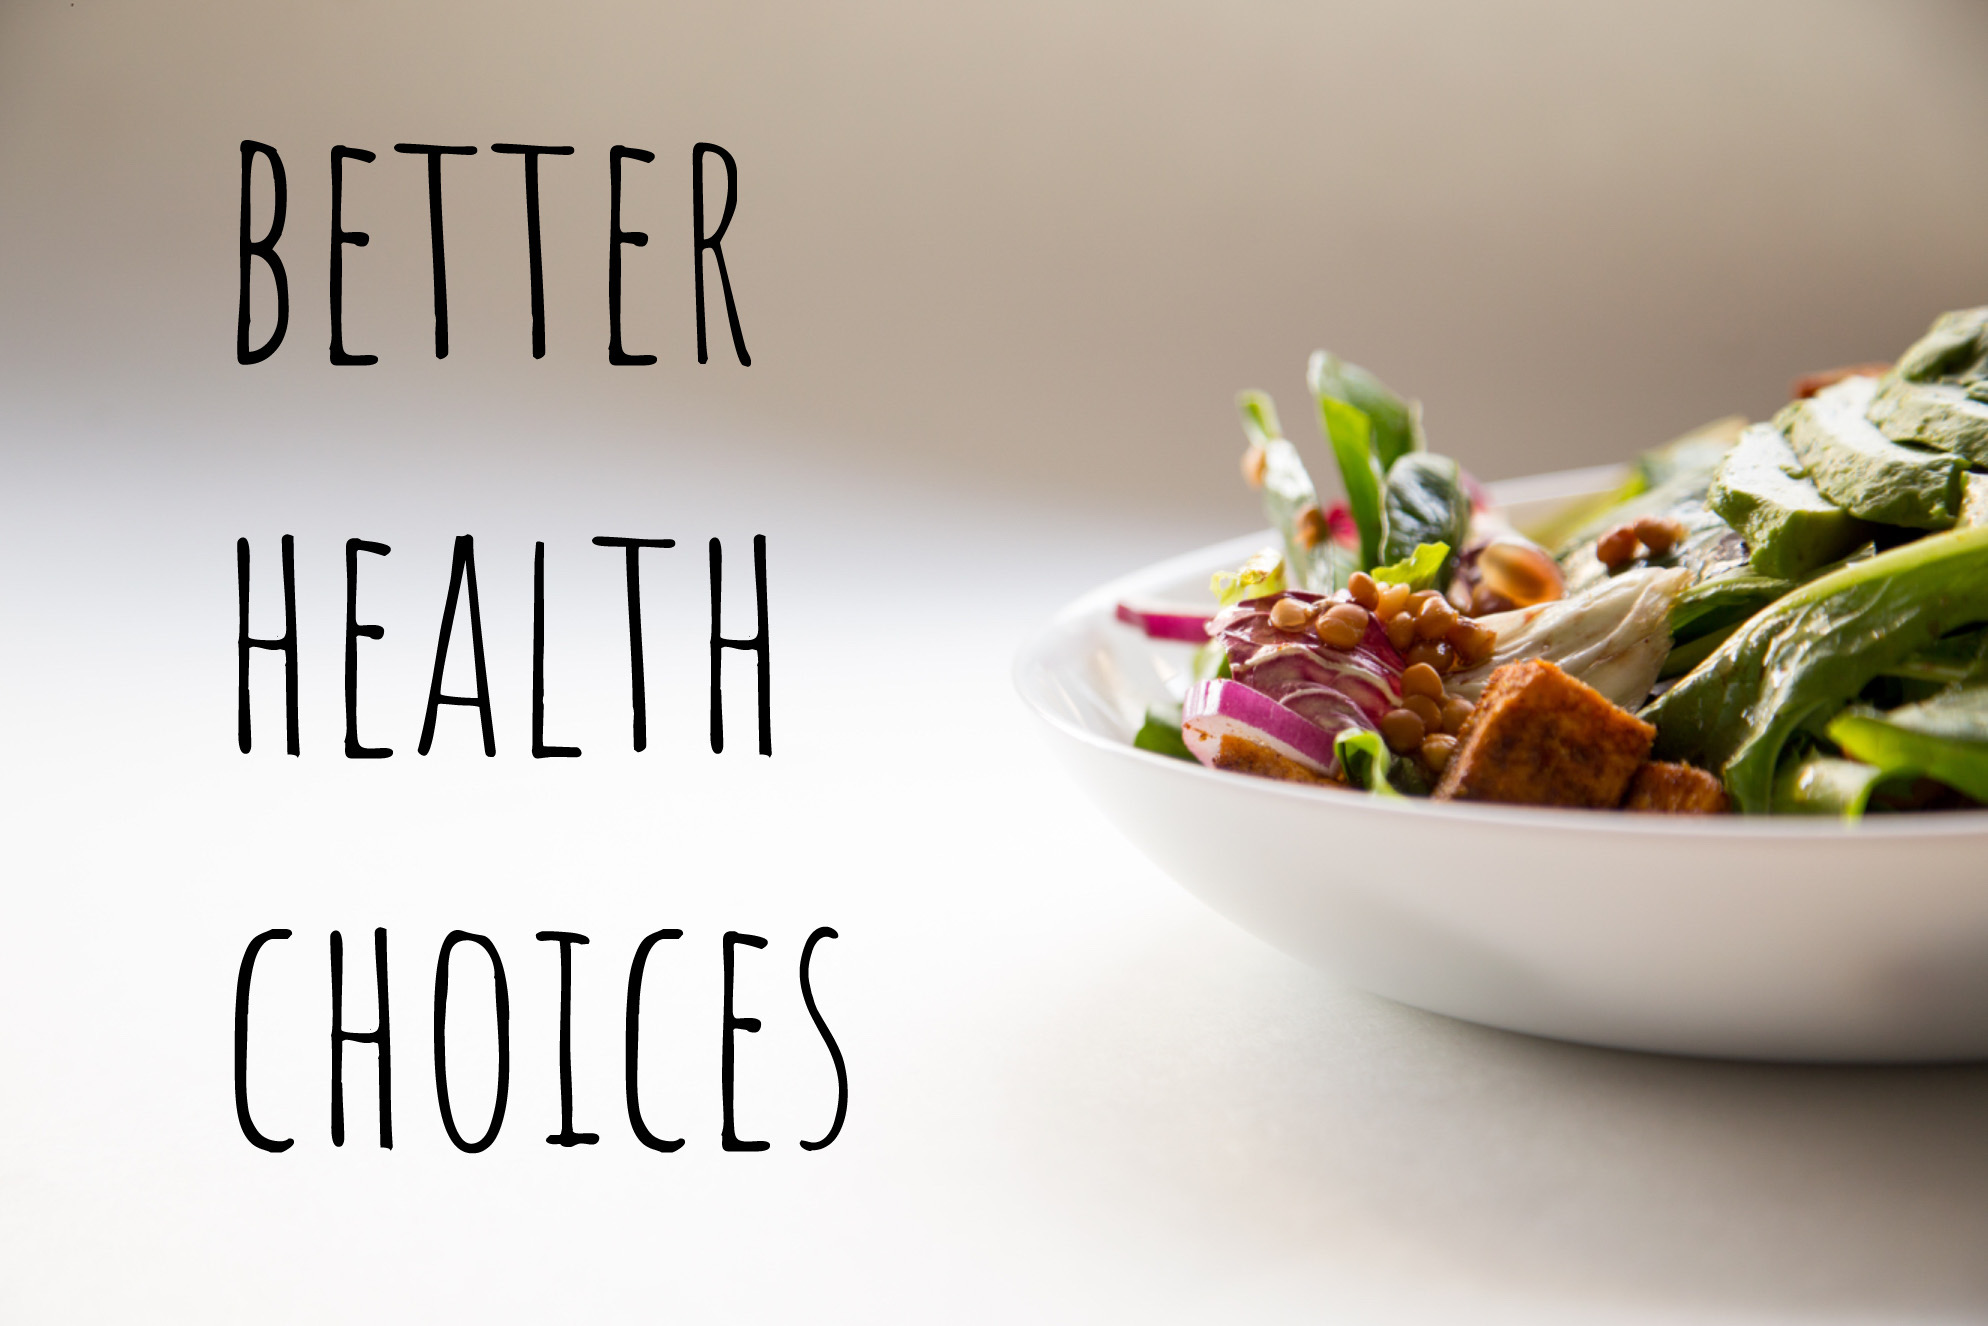 How can we make better health choices right now